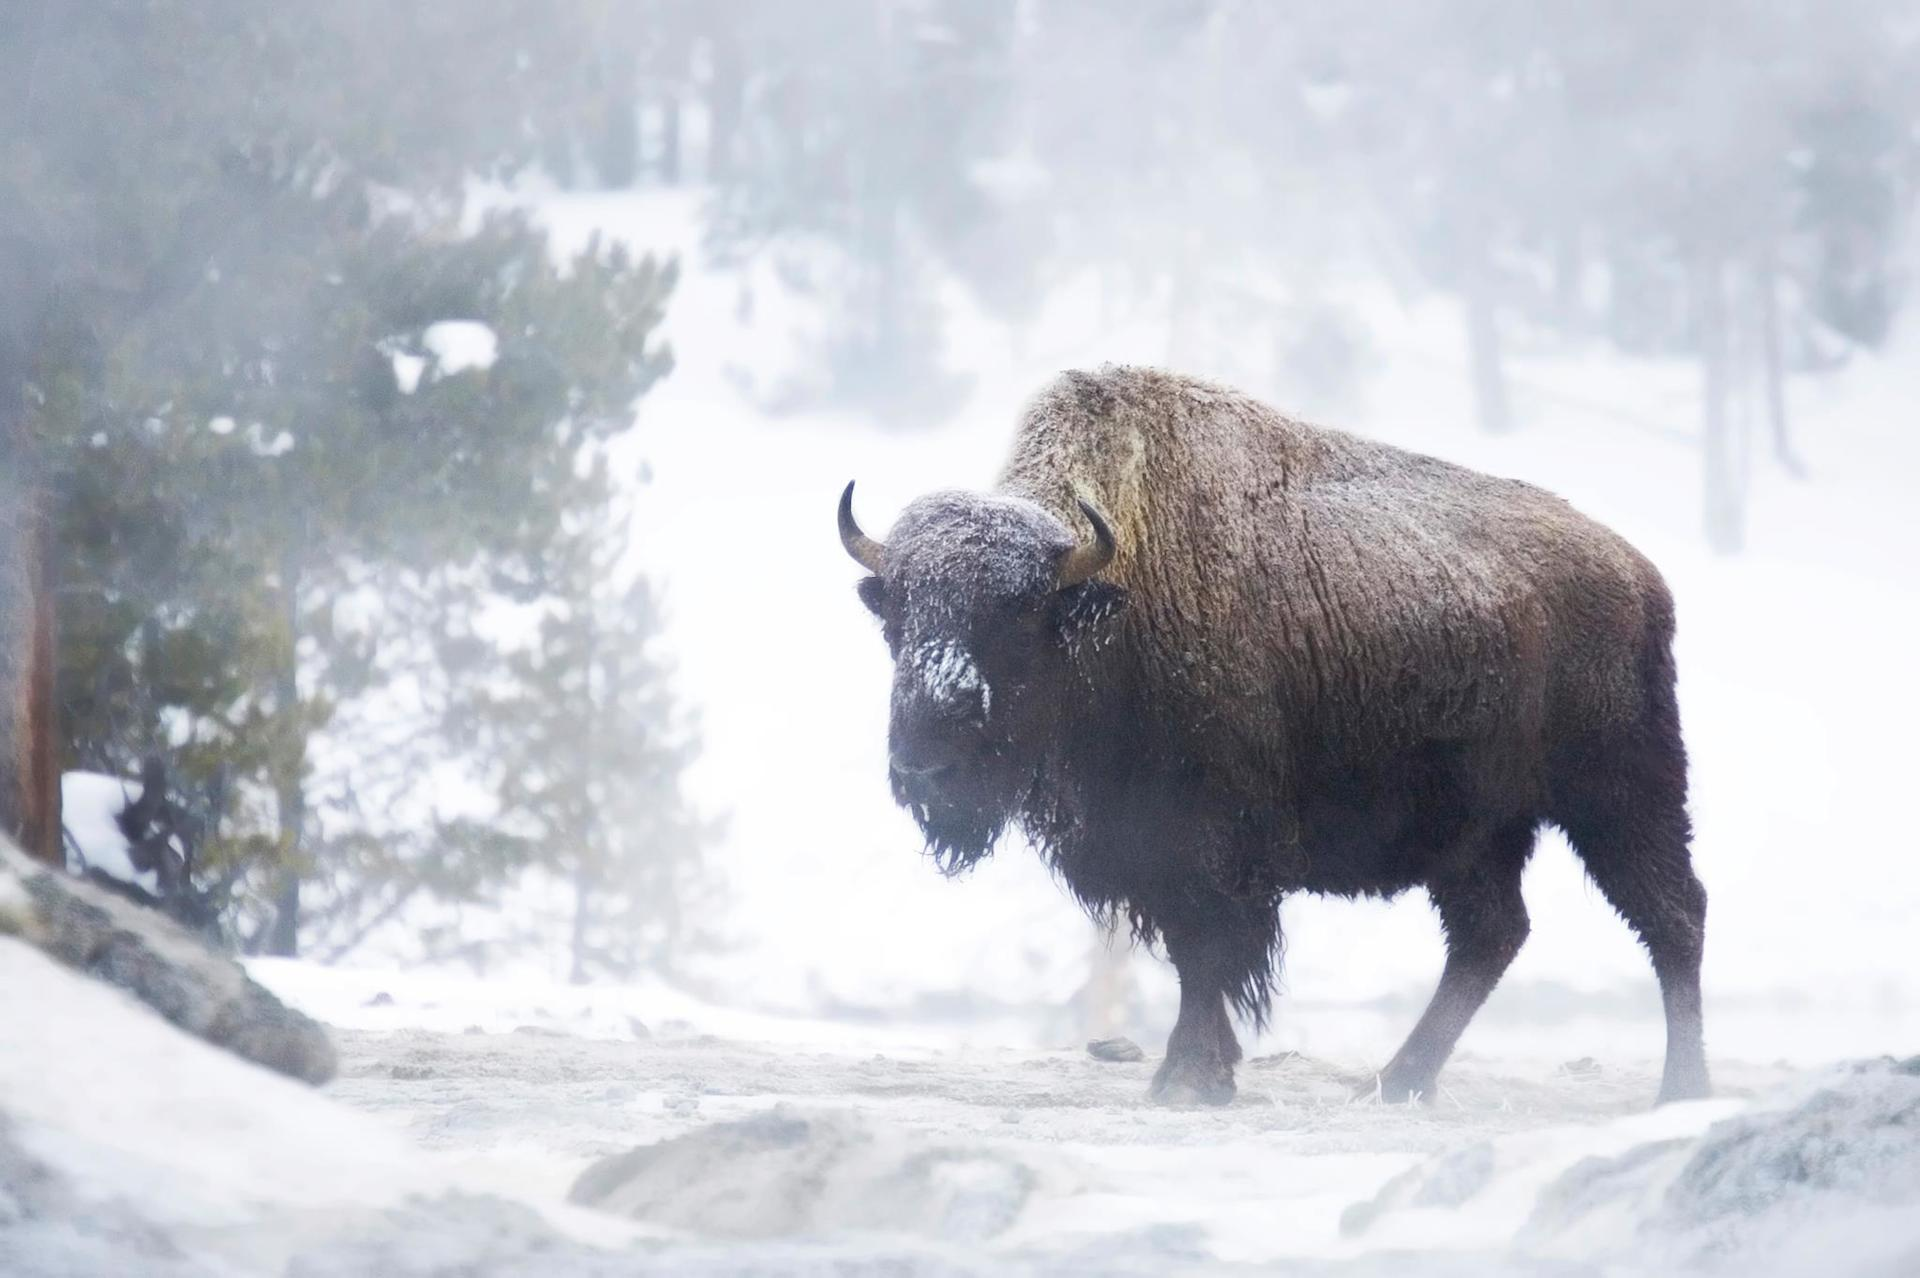 bison and winter wildlife in Yellowstone